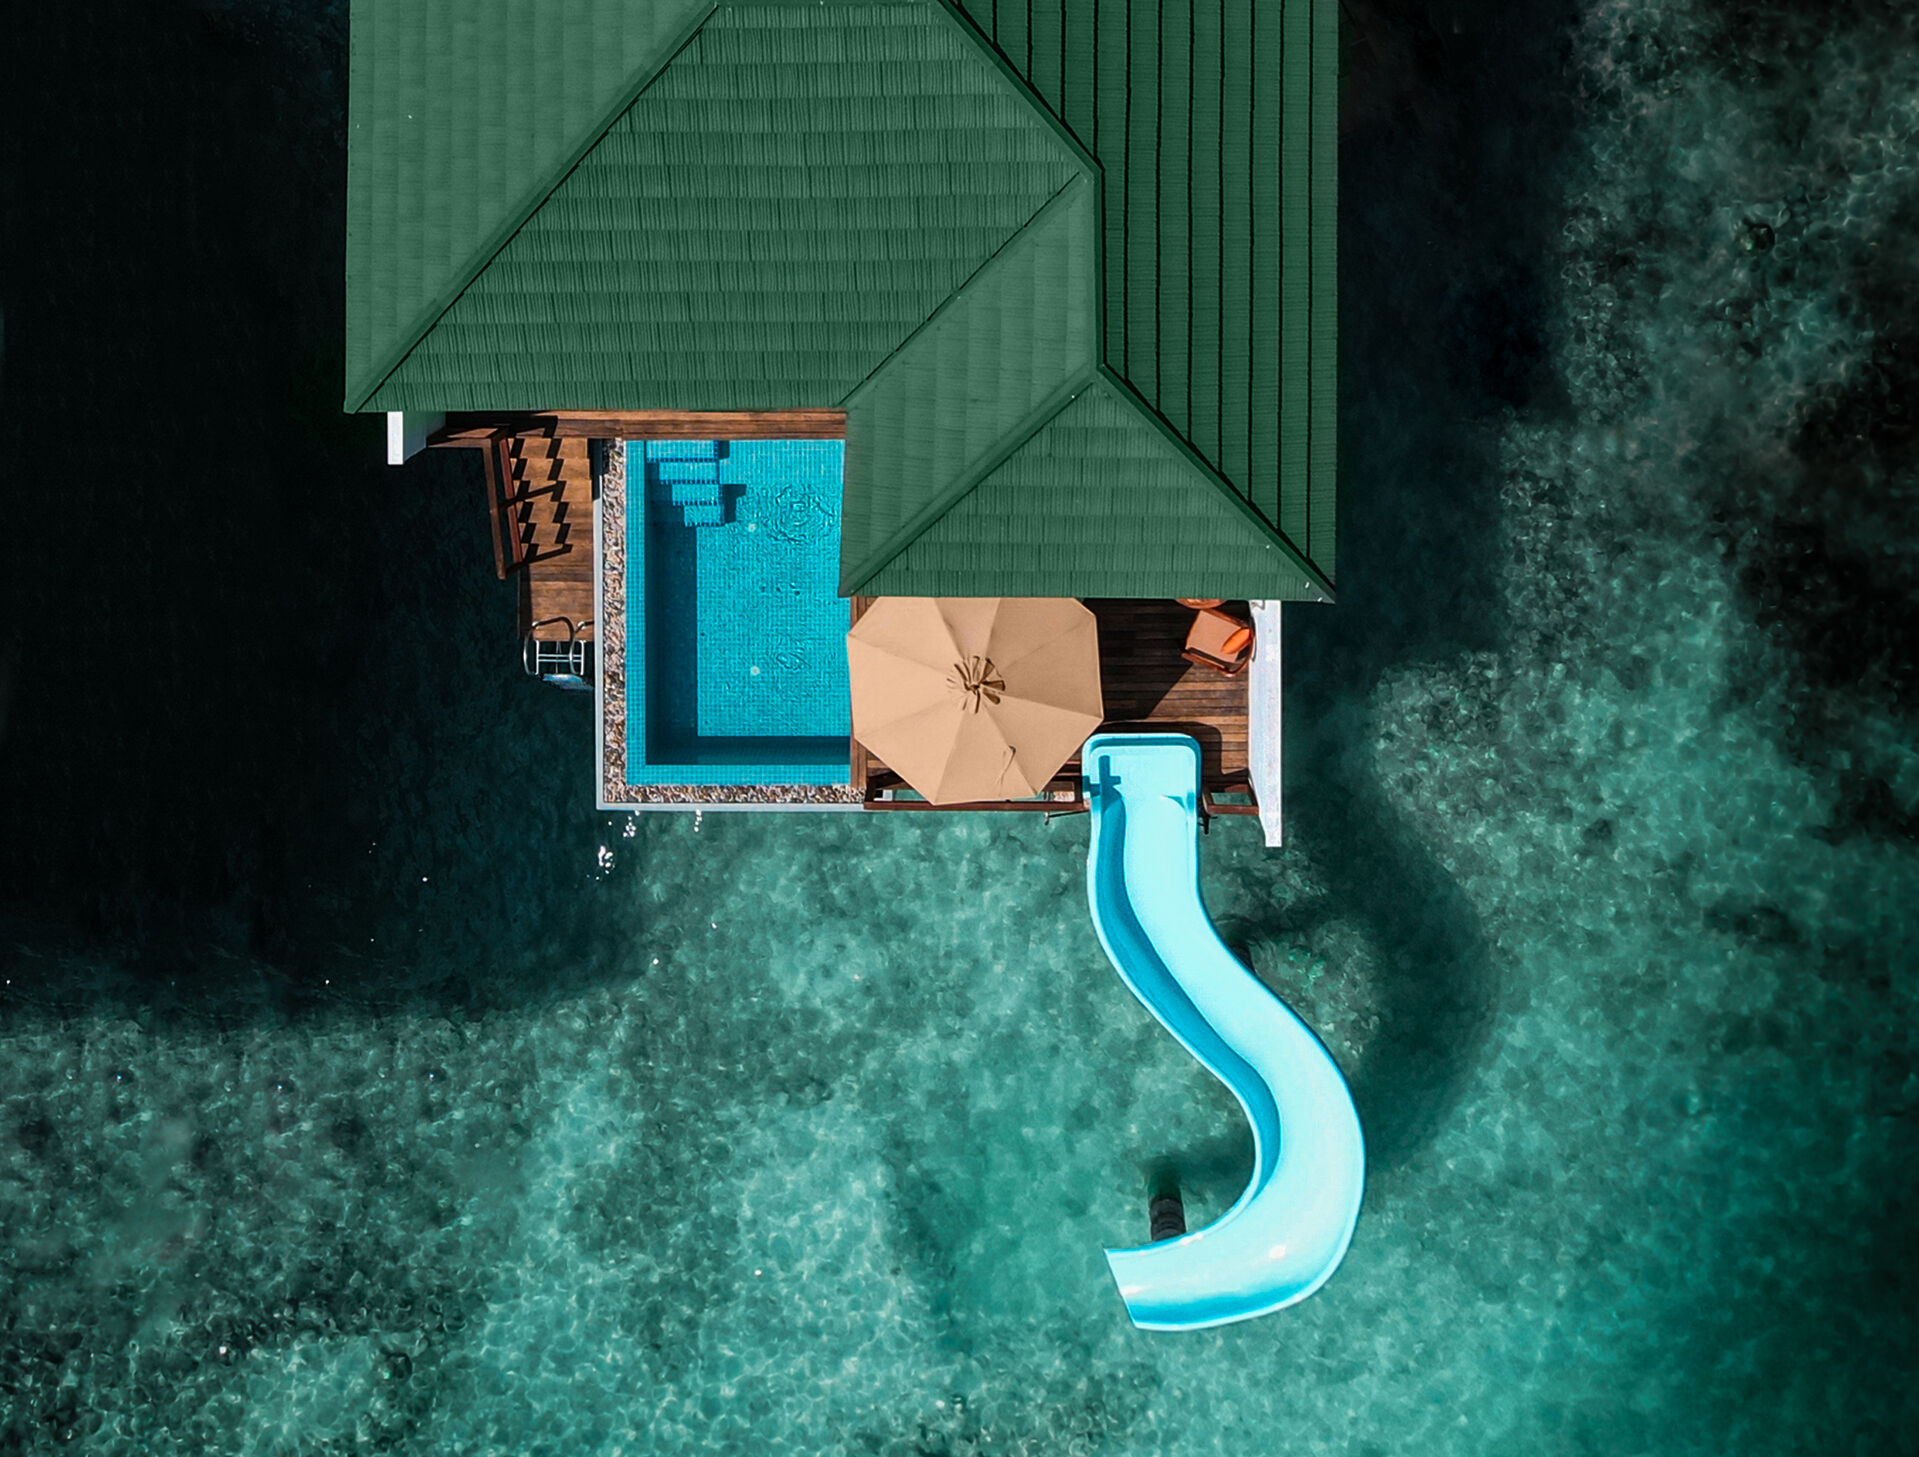 https://cms.satur.sk/data/imgs/tour_image/orig/water-villa-with-pool-slide-from-above-2000573.jpg